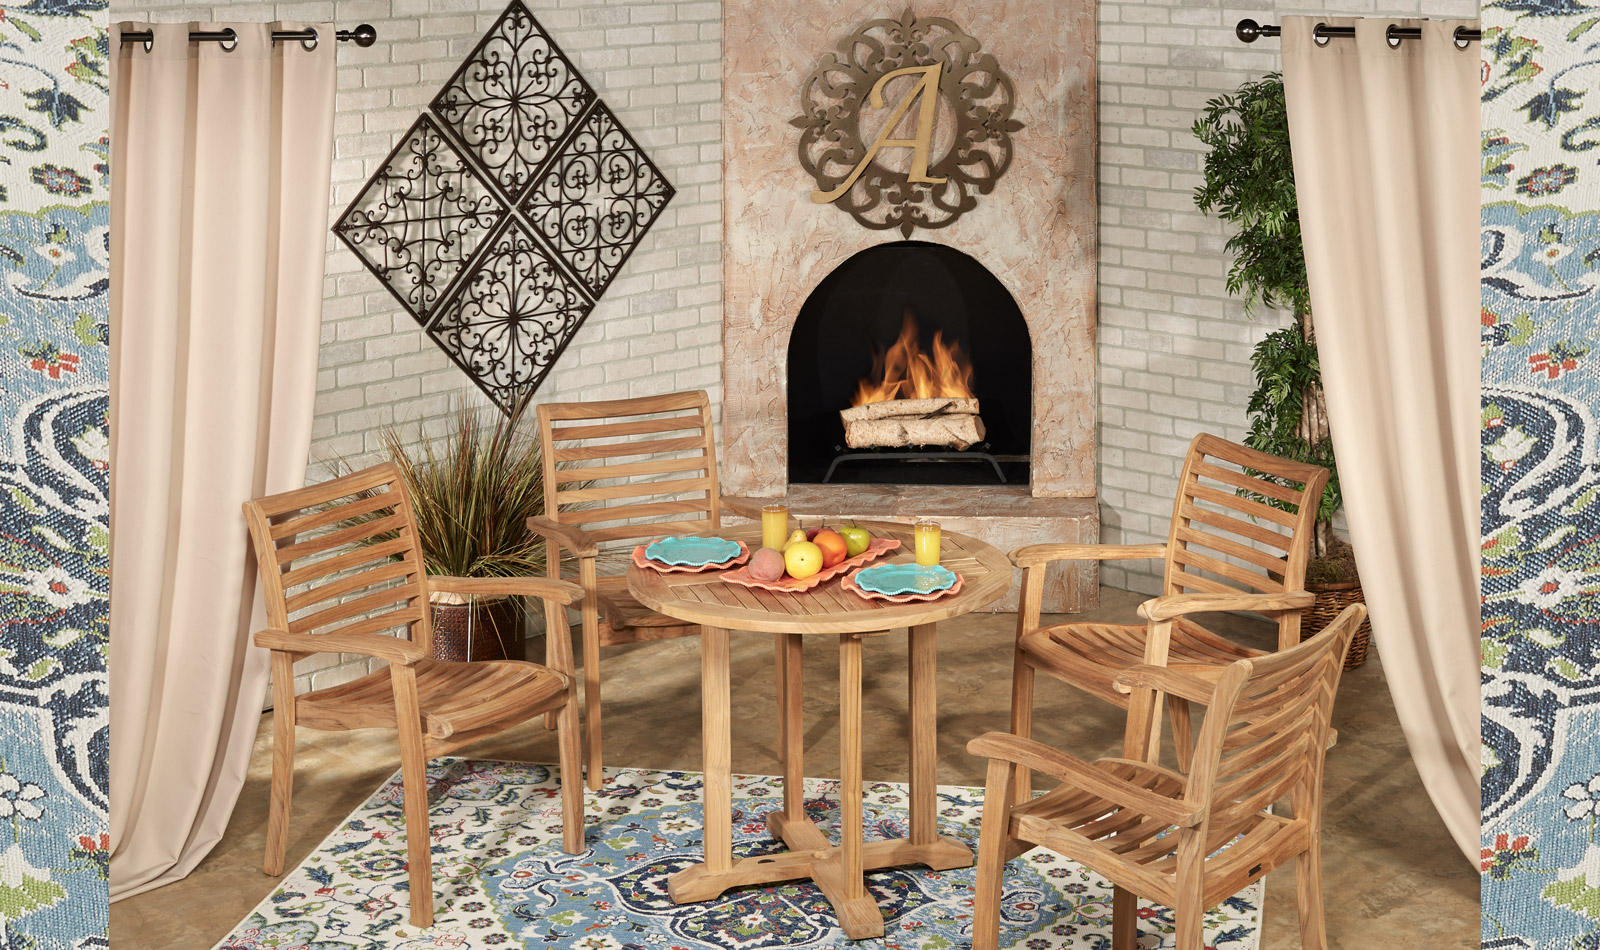 Get the Look - Oceana Teak Backyard Patio 3